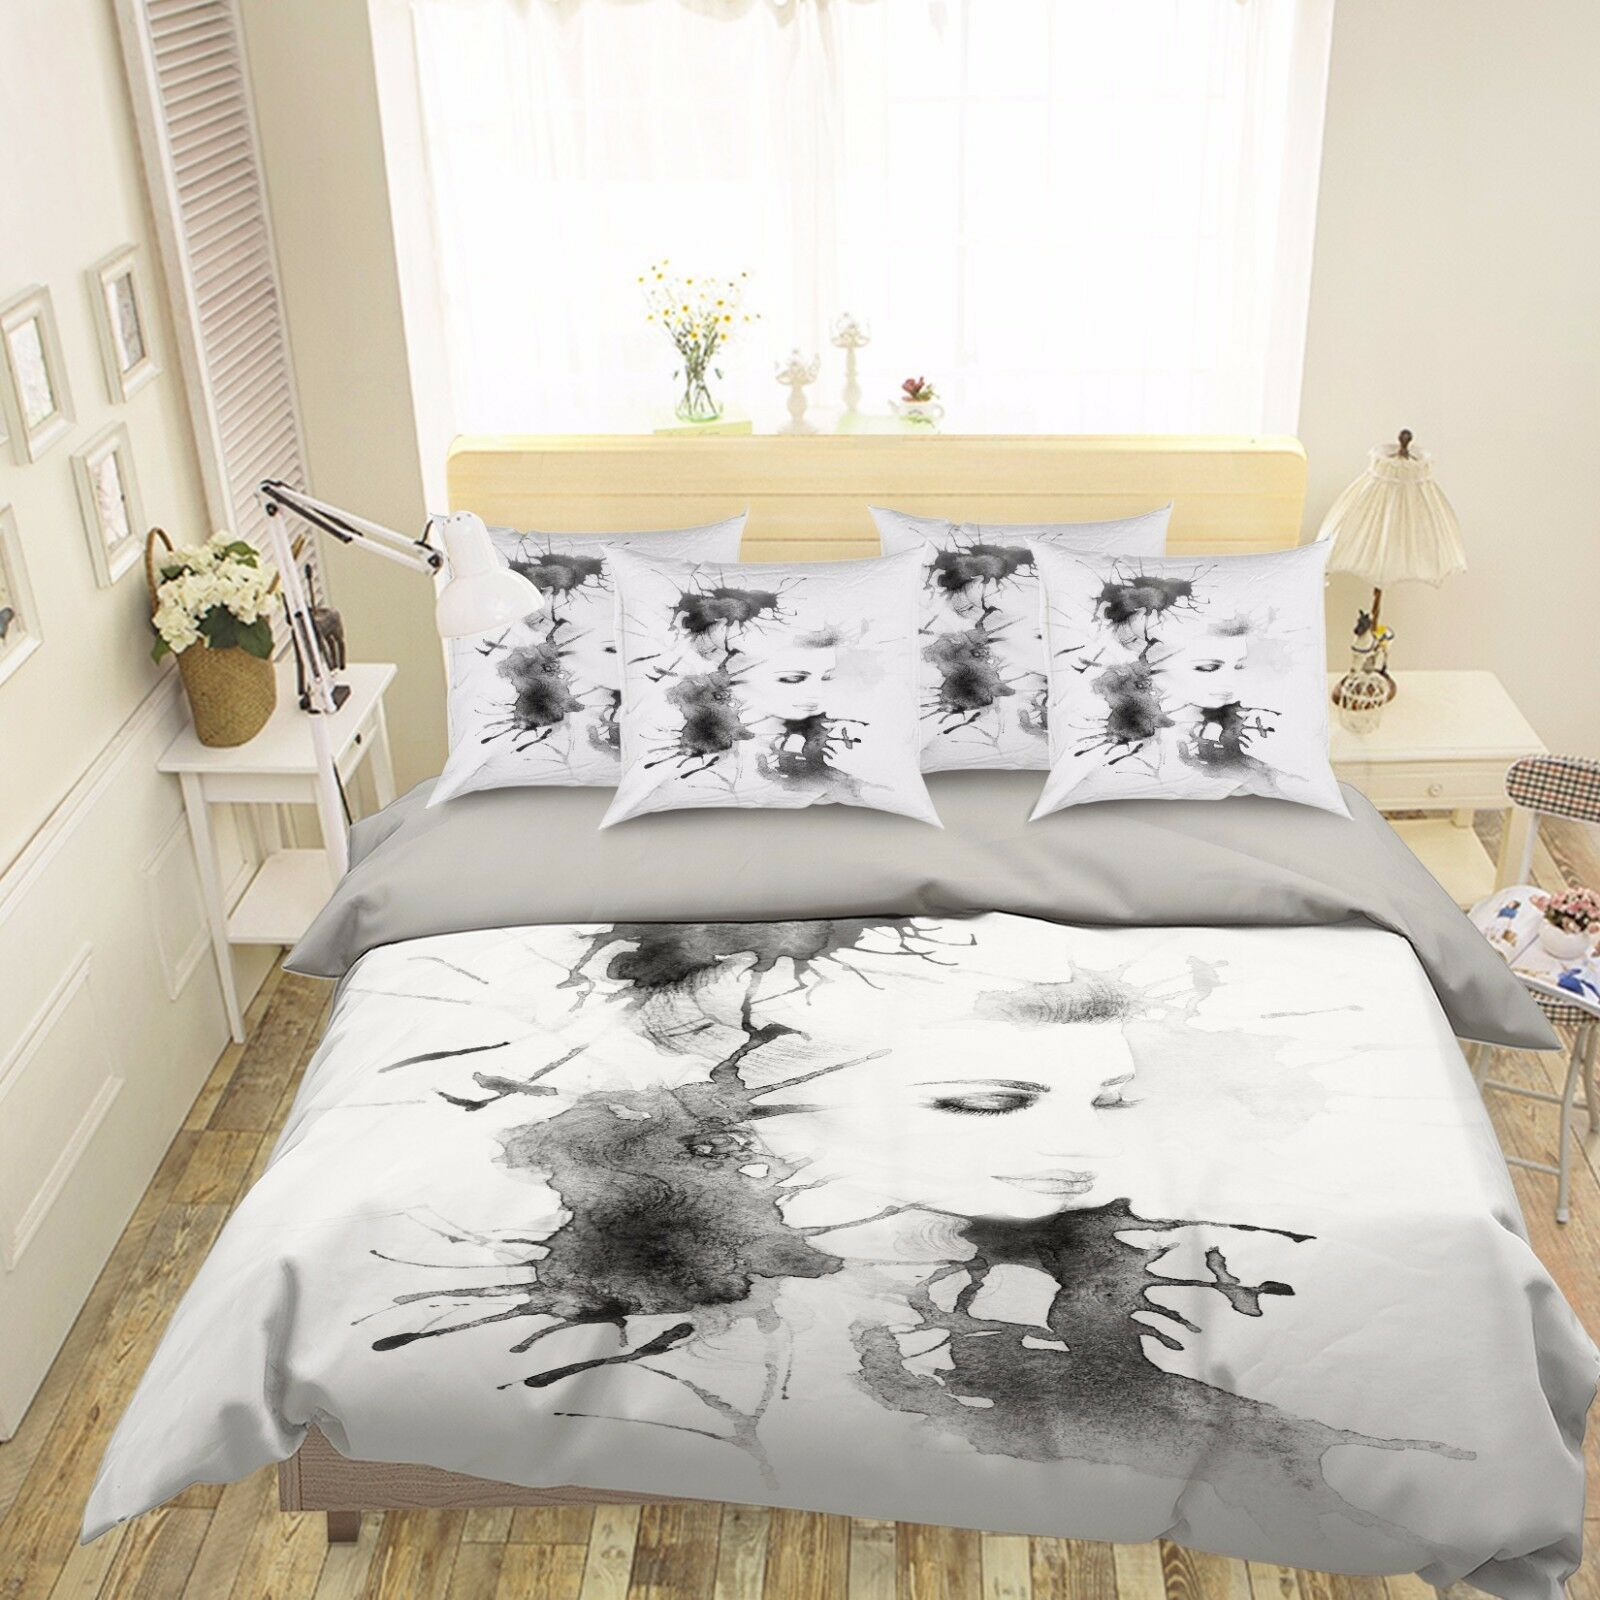 3D Ink Graffiti Beauty 421 Bed Pillowcases Quilt Duvet Cover Set Single Queen CA